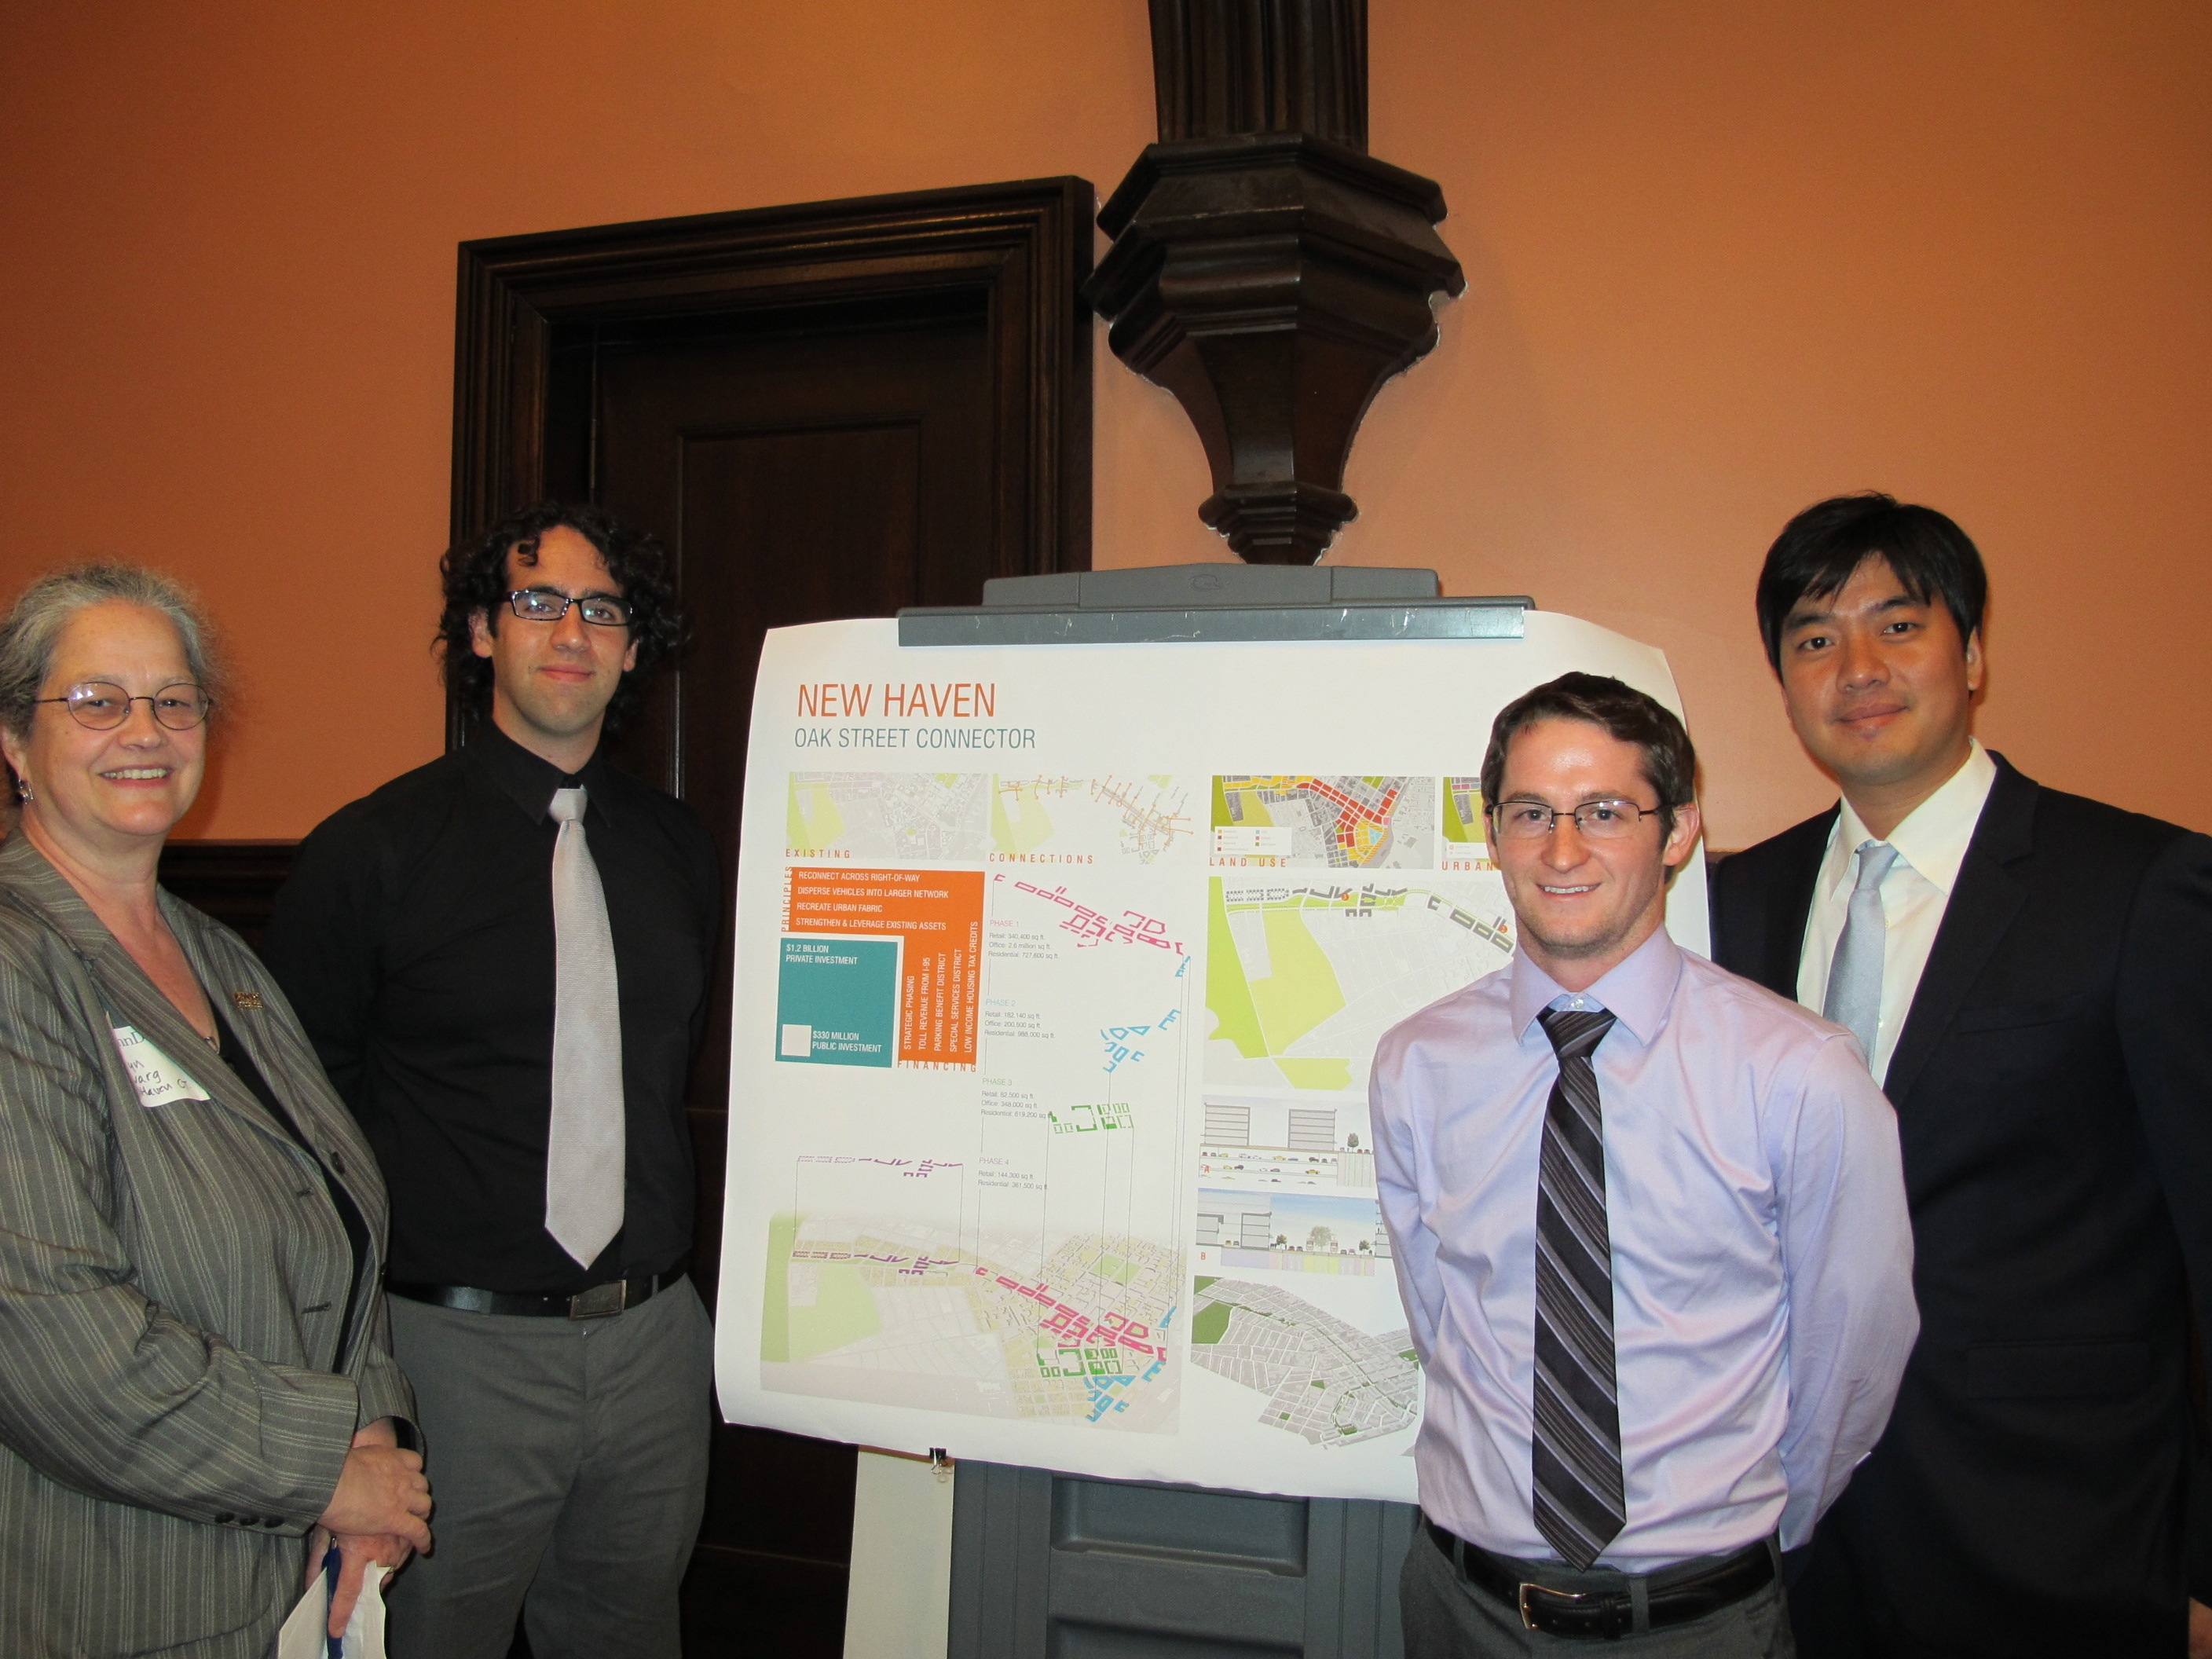 New Haven team: City planning director Karyn Gilvargn and students Jordan Block, Mike Ruane and Ho Sung Park